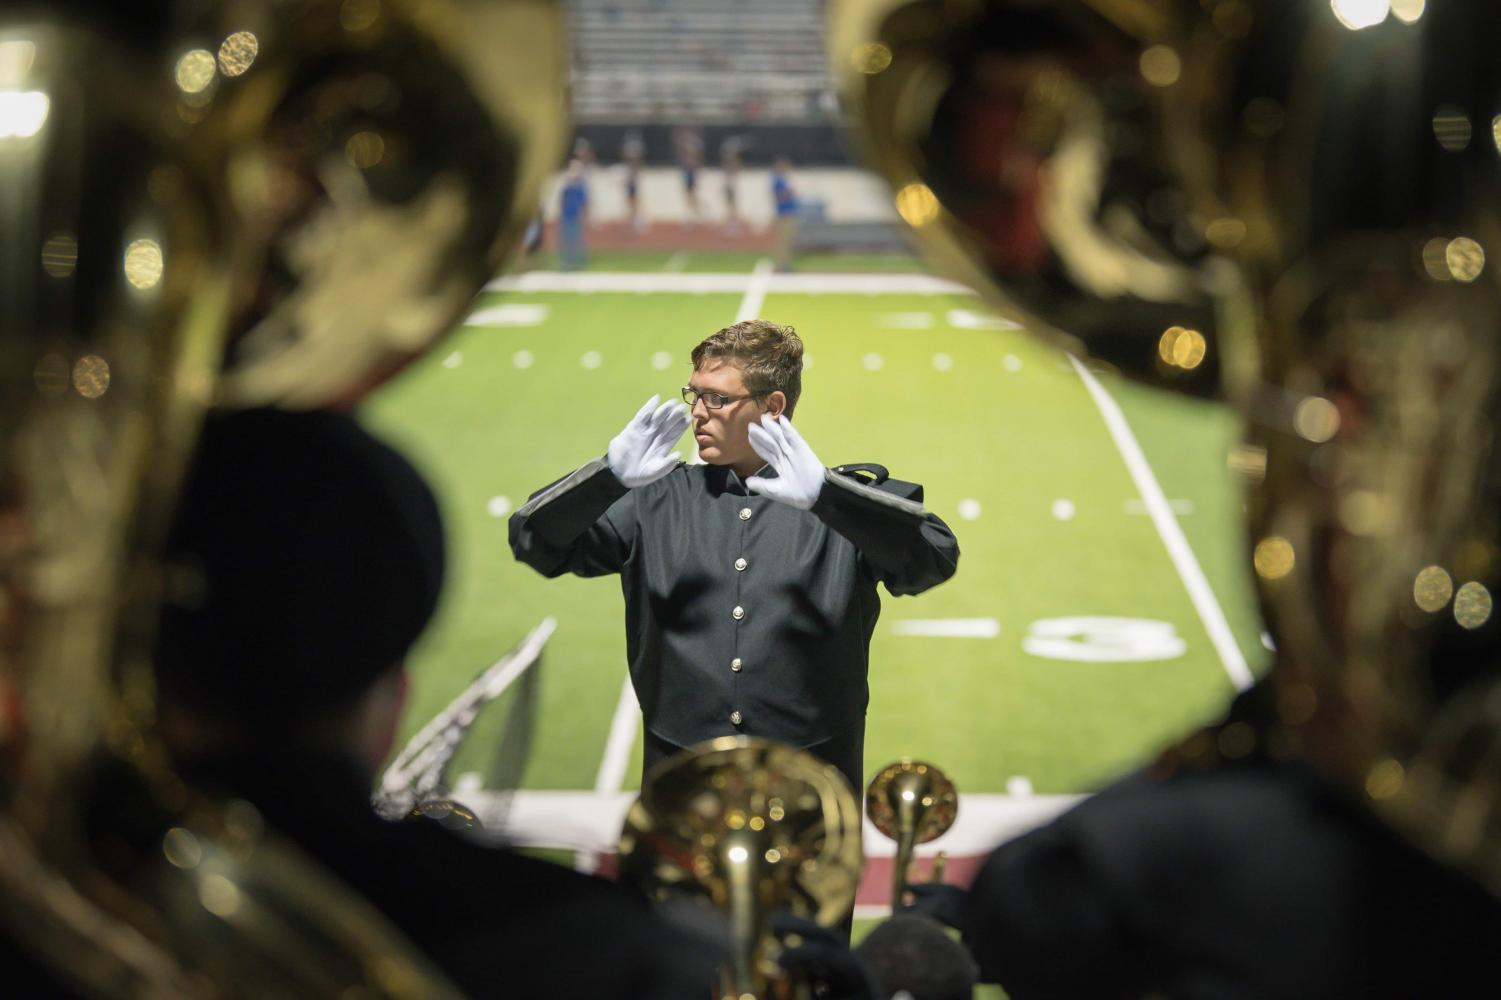 Leading the marching band at the game against Decatur, sophomore Kaden Burgess gets his first taste of directing music.